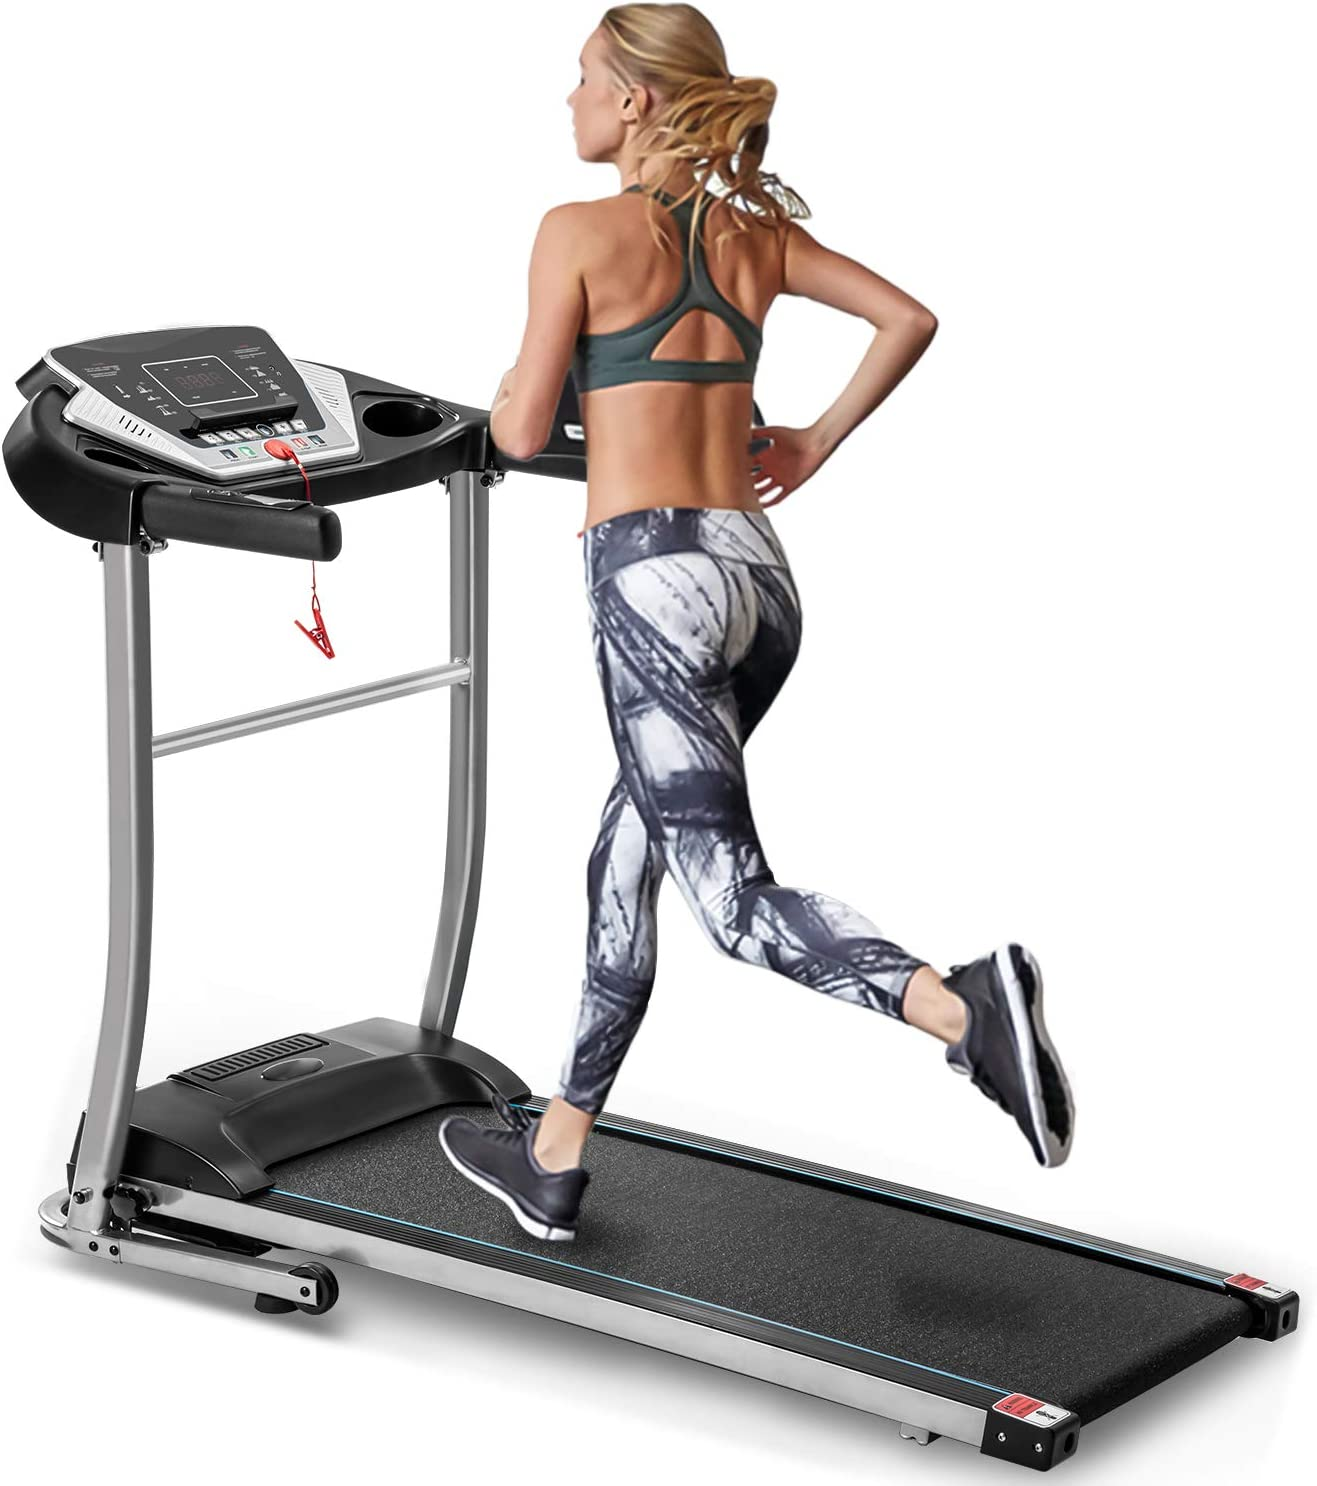 OFFicial site EAHOME Folding Treadmill Electric Ma Max 65% OFF Motorized Running